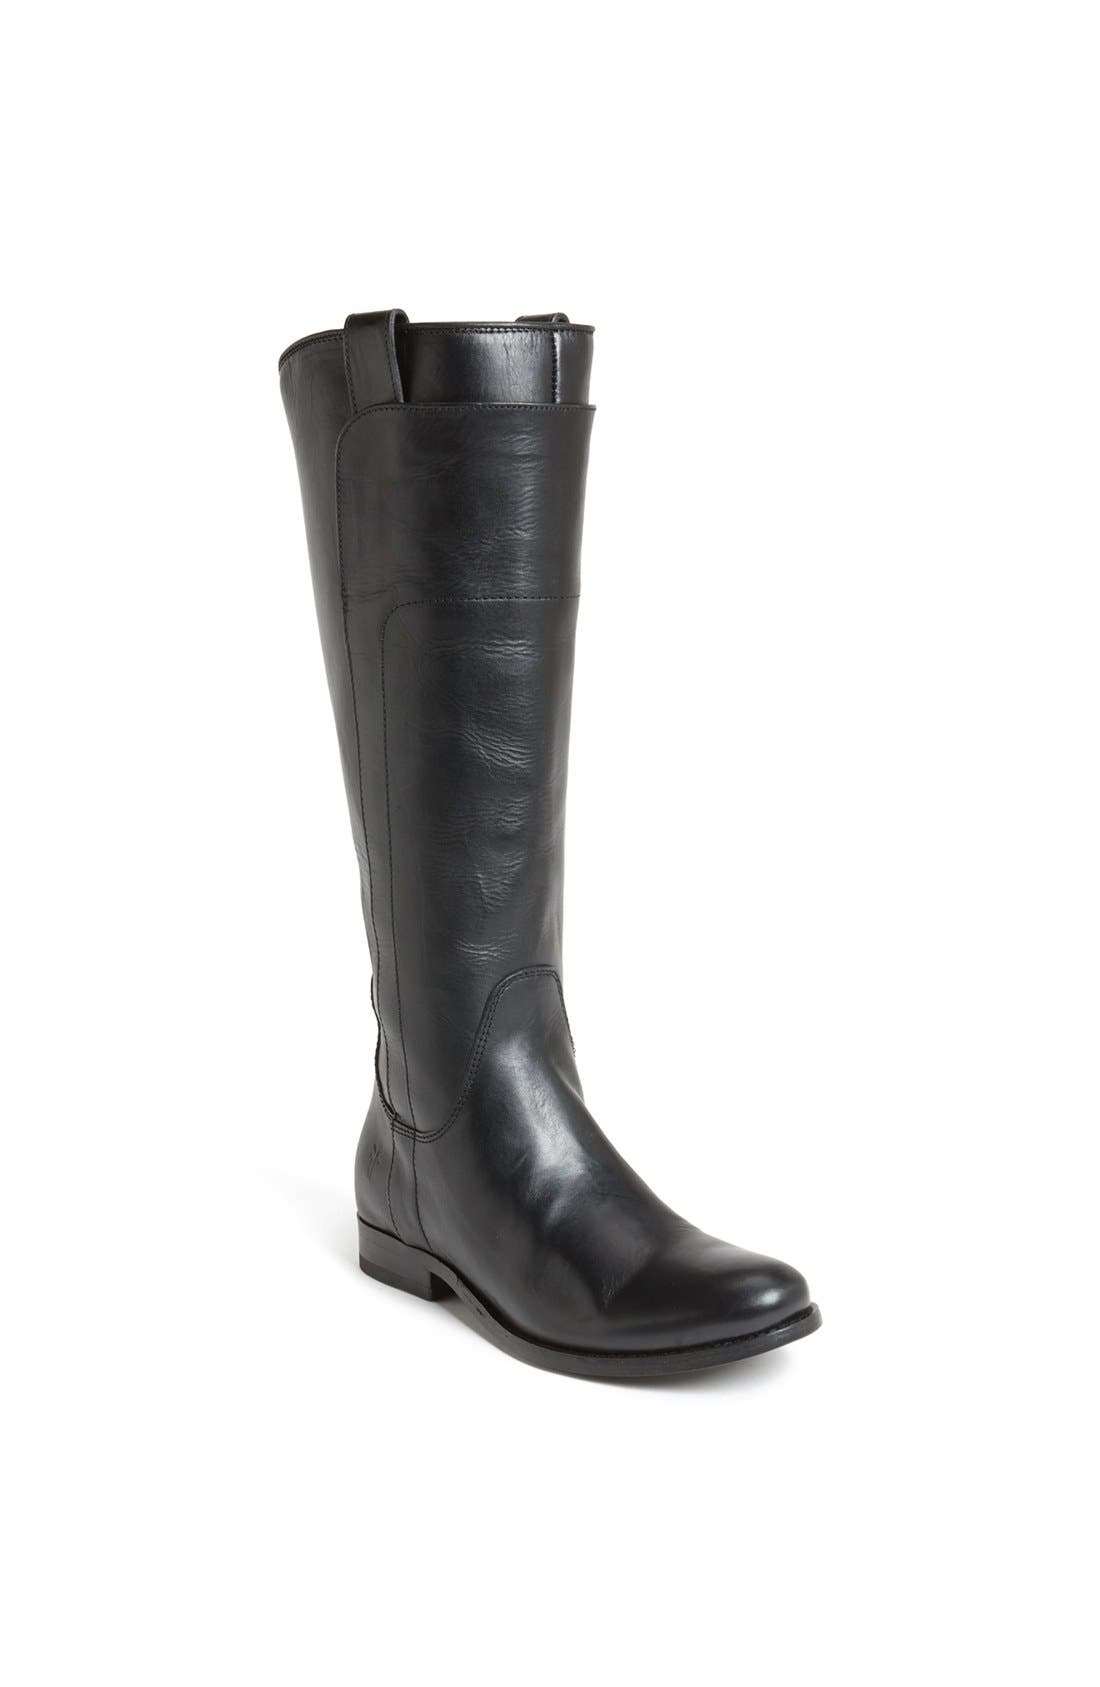 Alternate Image 1 Selected - Frye 'Melissa' Riding Boot